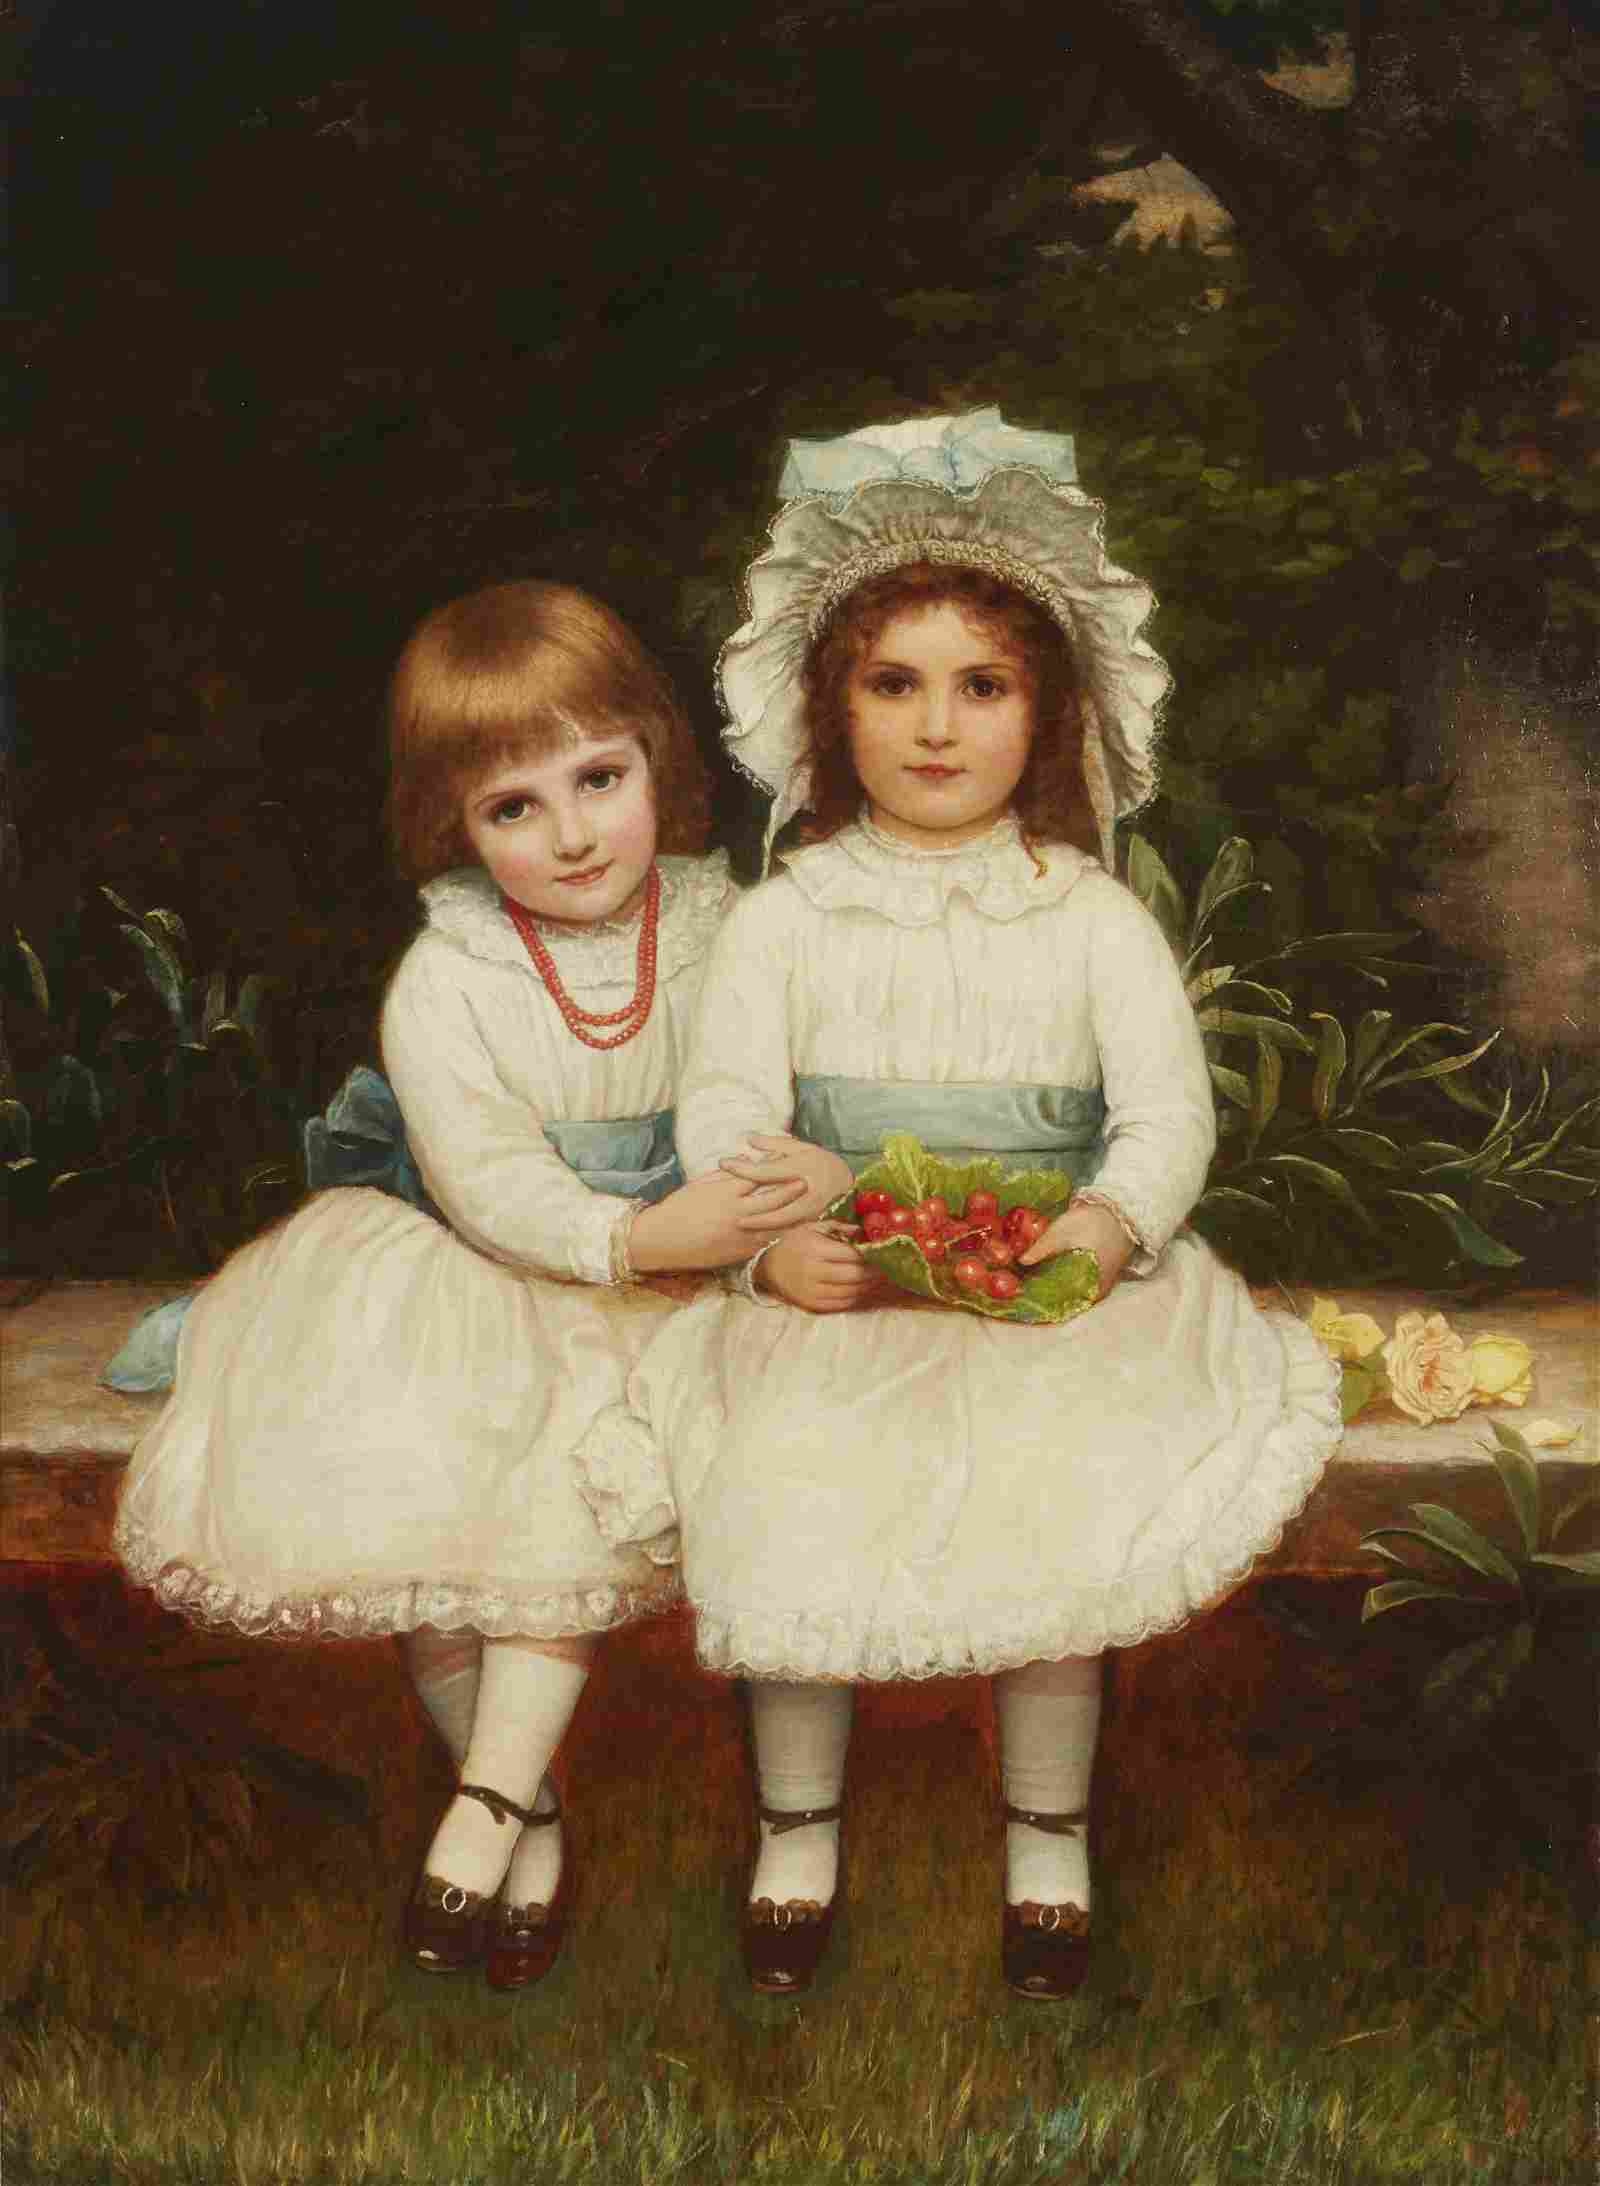 Portrait of two young girls sitting in the garden